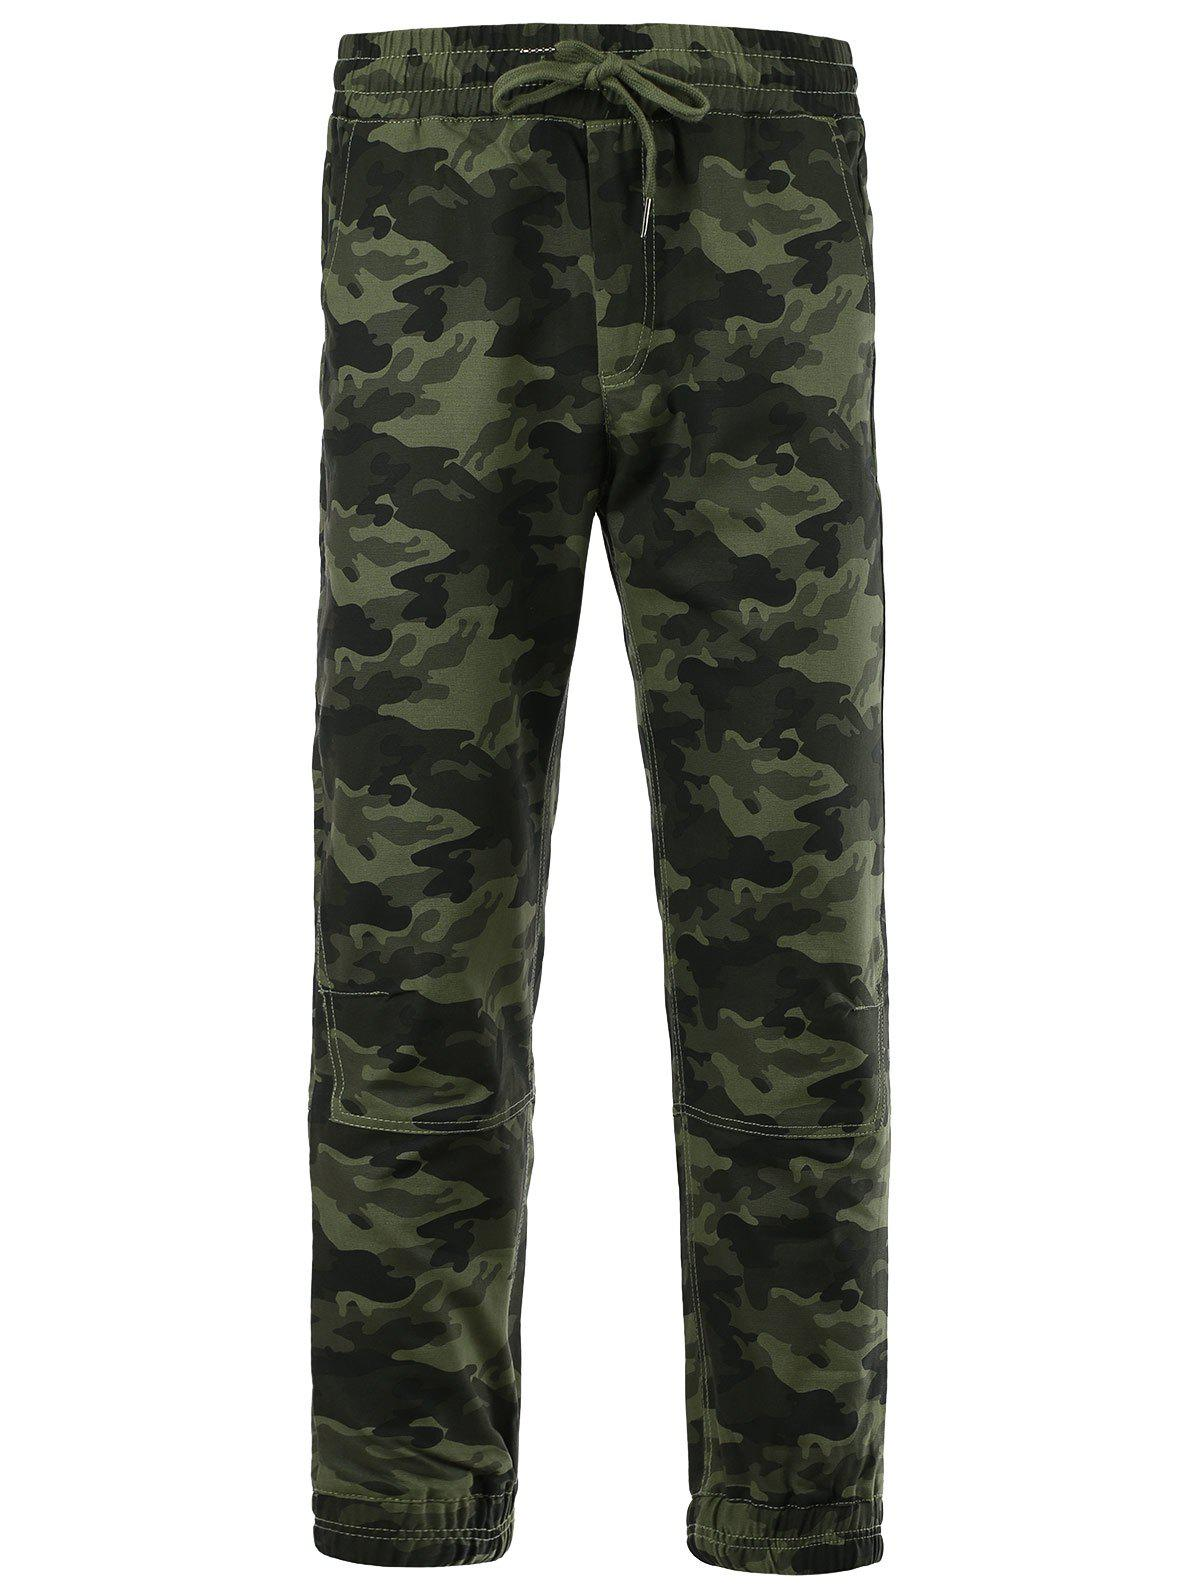 Cotton Blends Camouflage Beam Feet Lace-Up Pants - CAMOUFLAGE 40